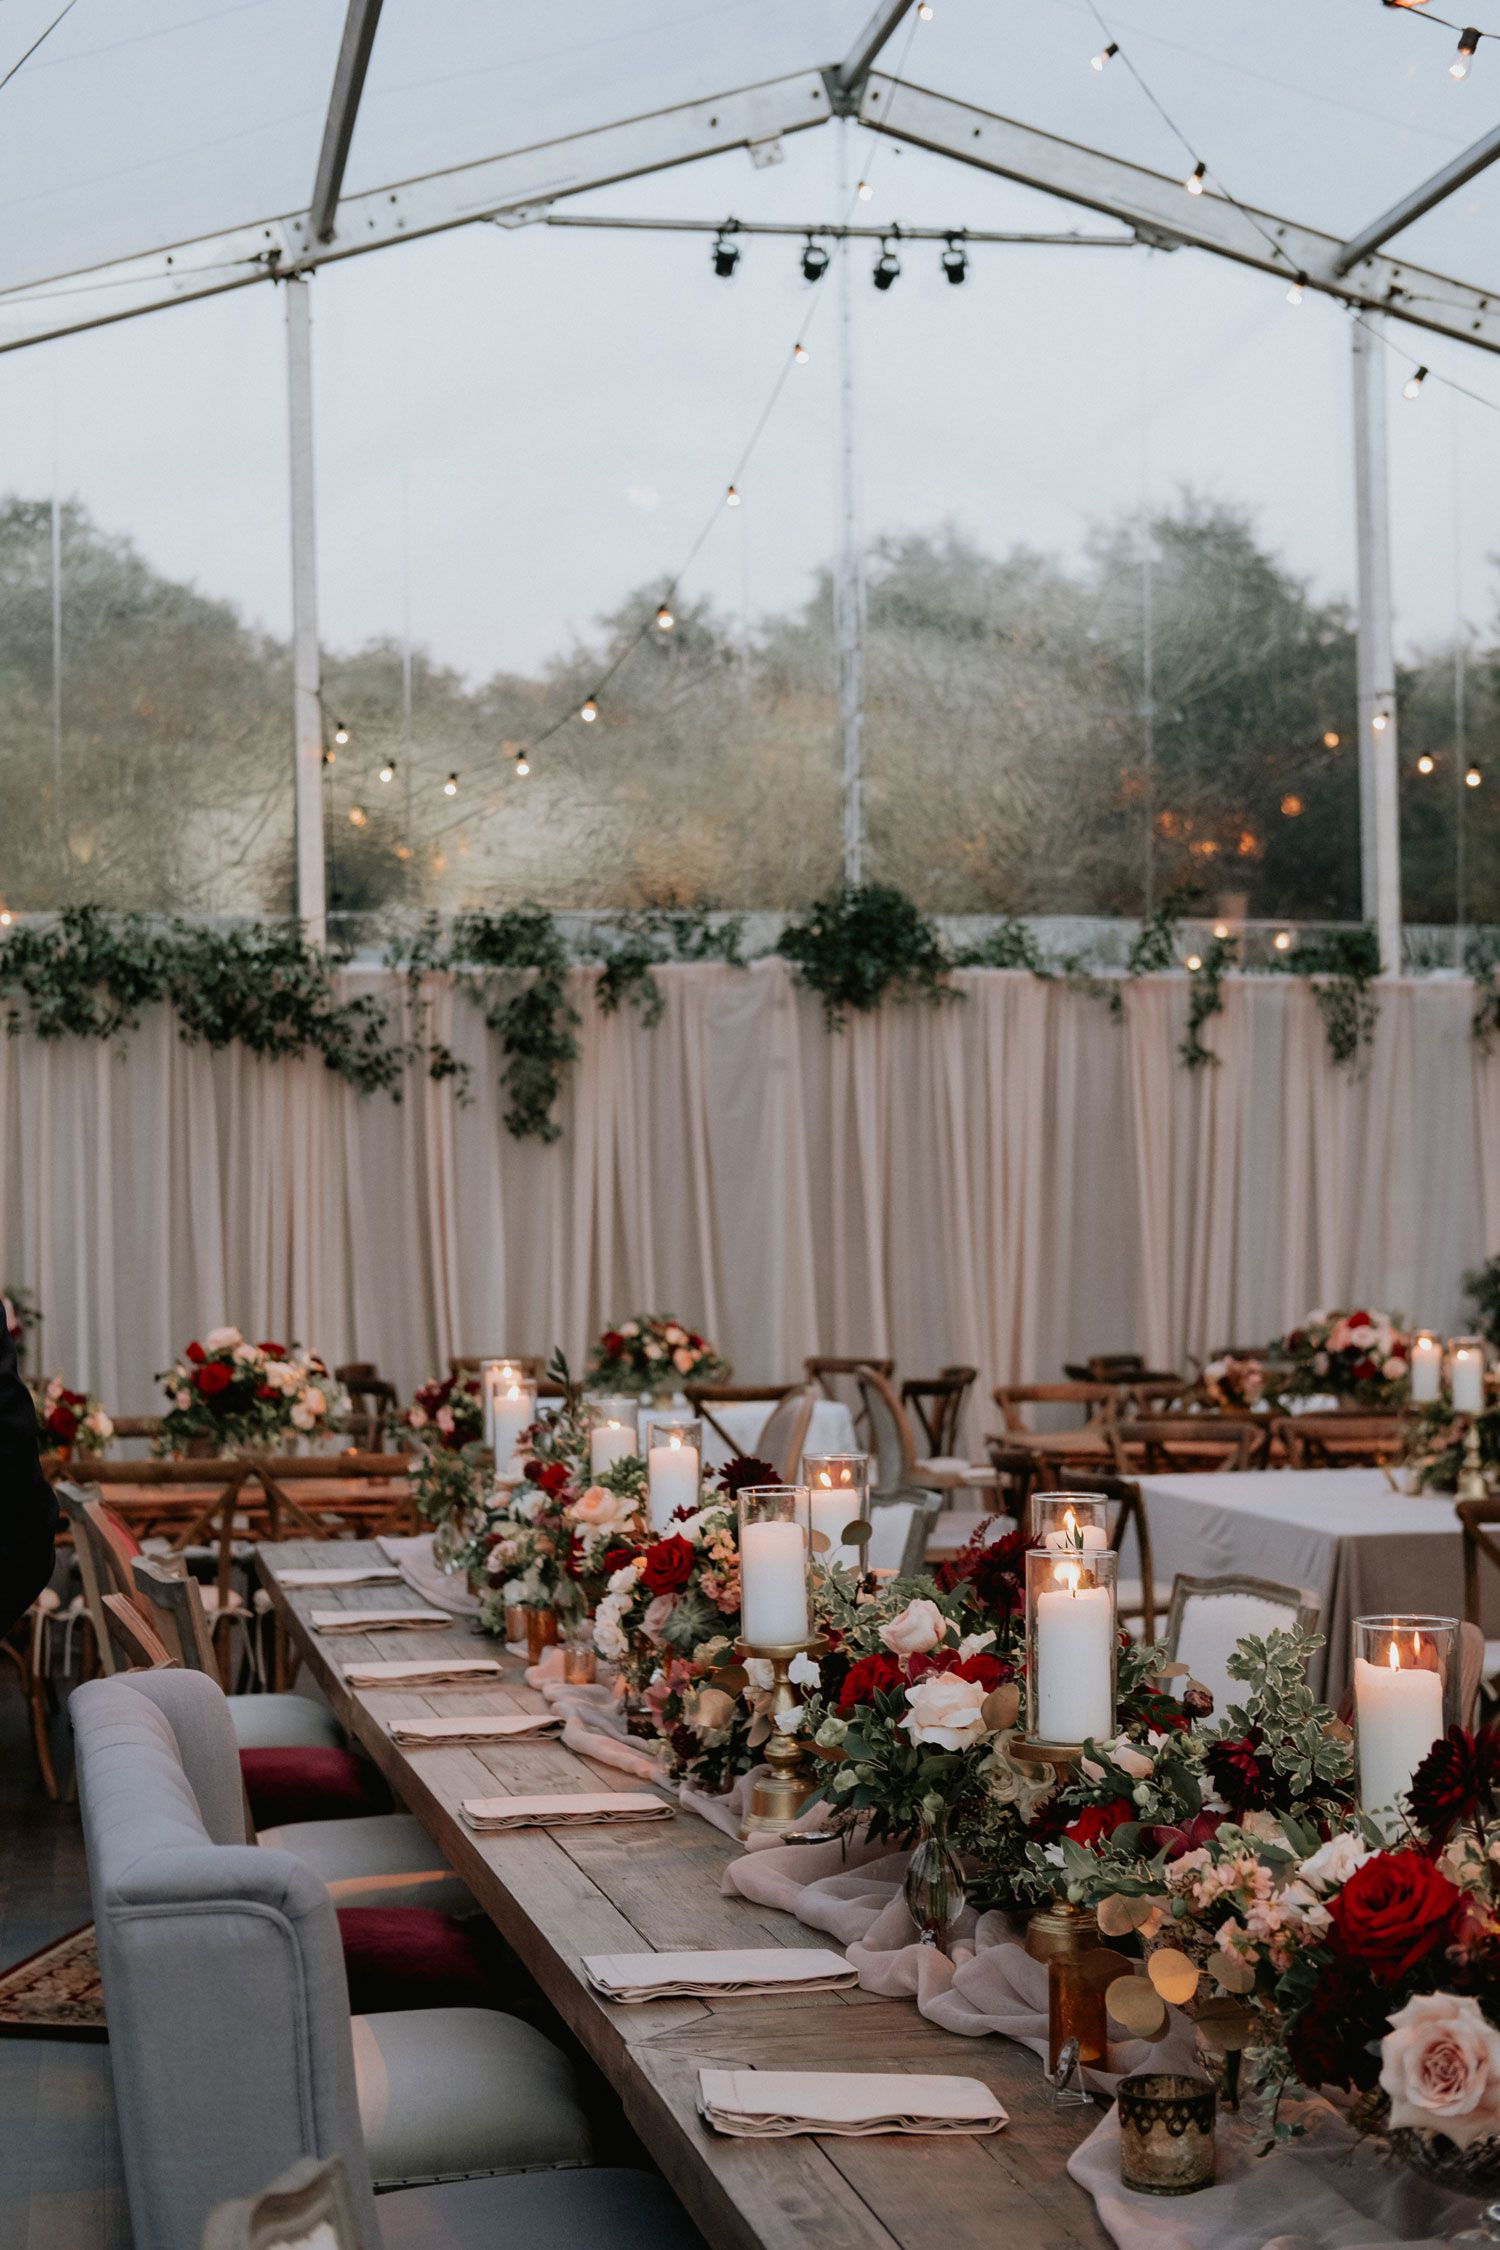 Outdoor Ceremony Tented Reception With Cozy Fall Color Palette Inside Weddings Autumn Wedding Reception Fall Wedding Reception Decorations Outdoor Fall Wedding